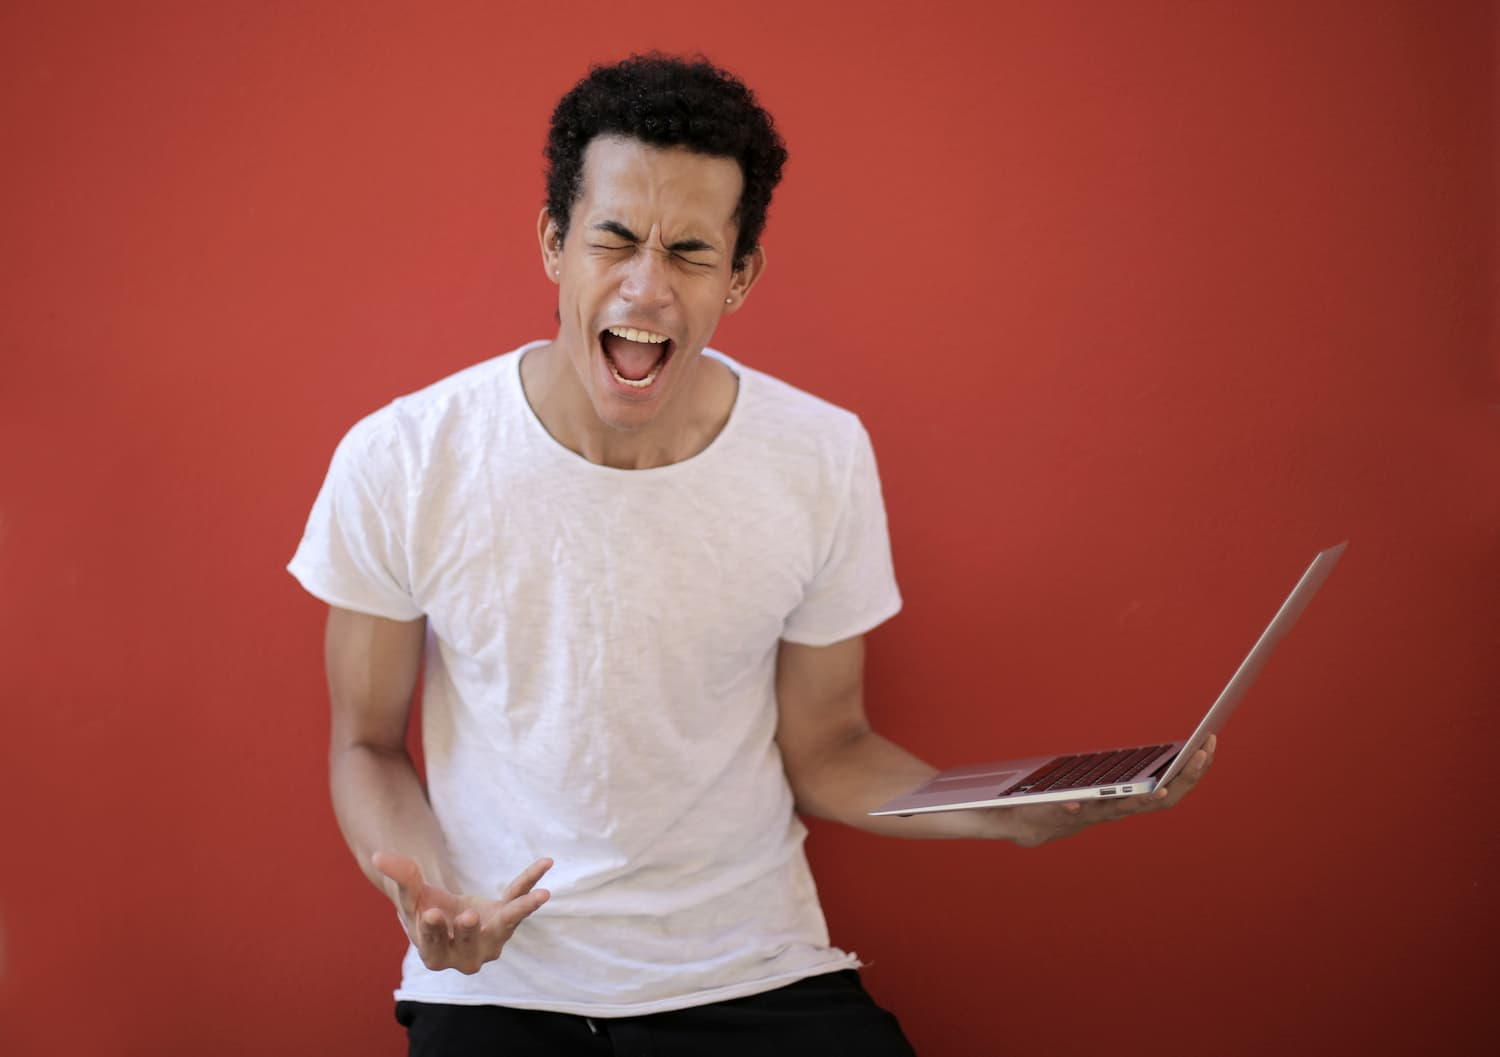 man screaming at laptop, frustrated with technology